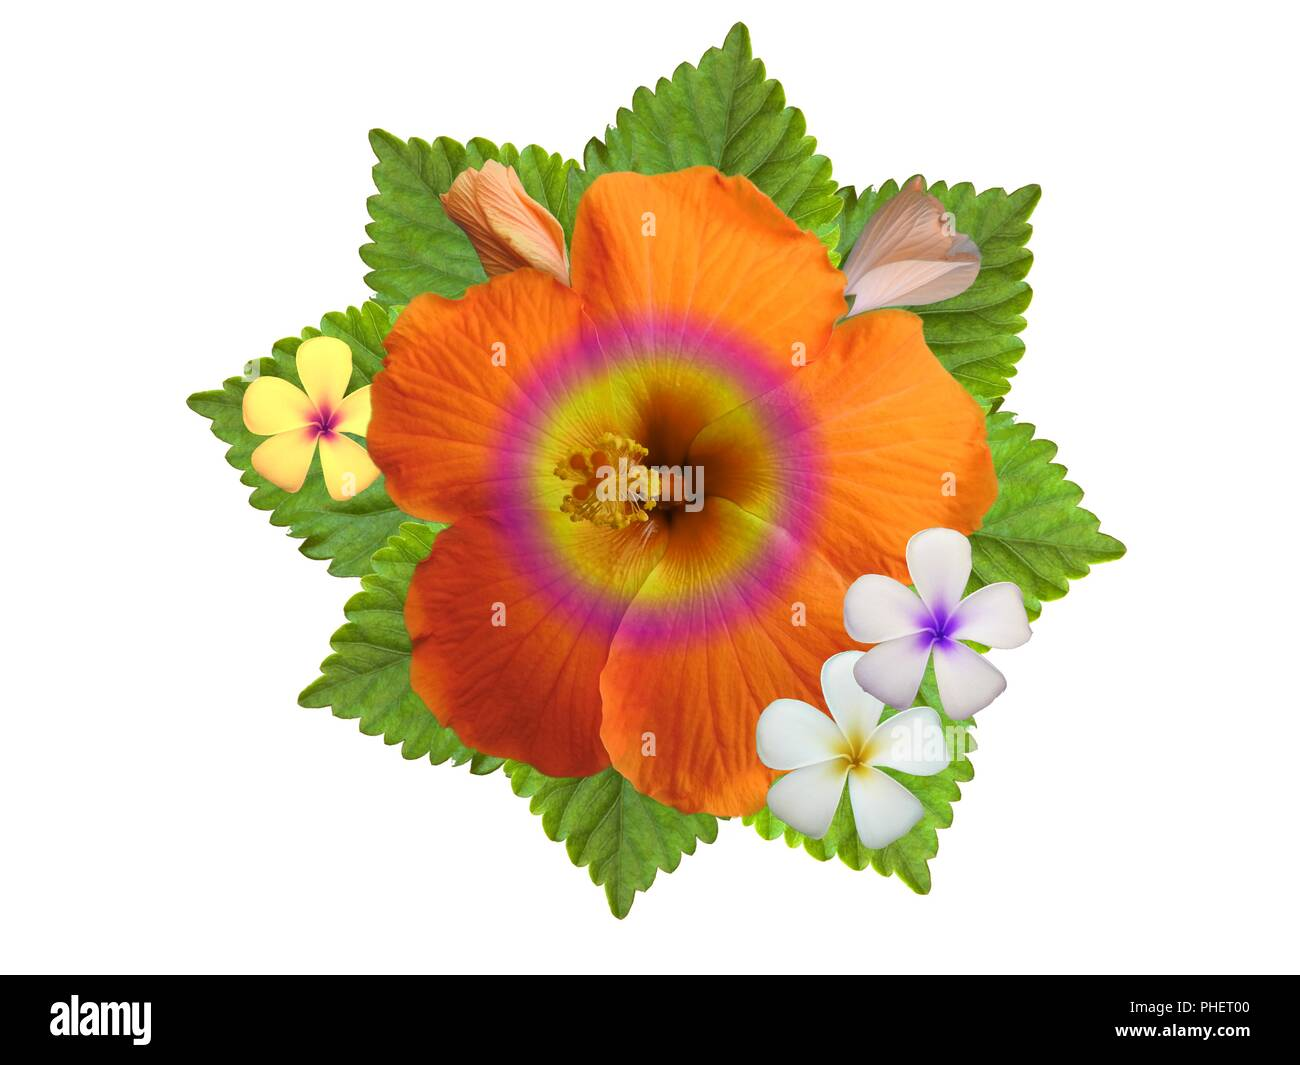 Hibiscus Flowers In Different Colors Stock Photo 217299712 Alamy